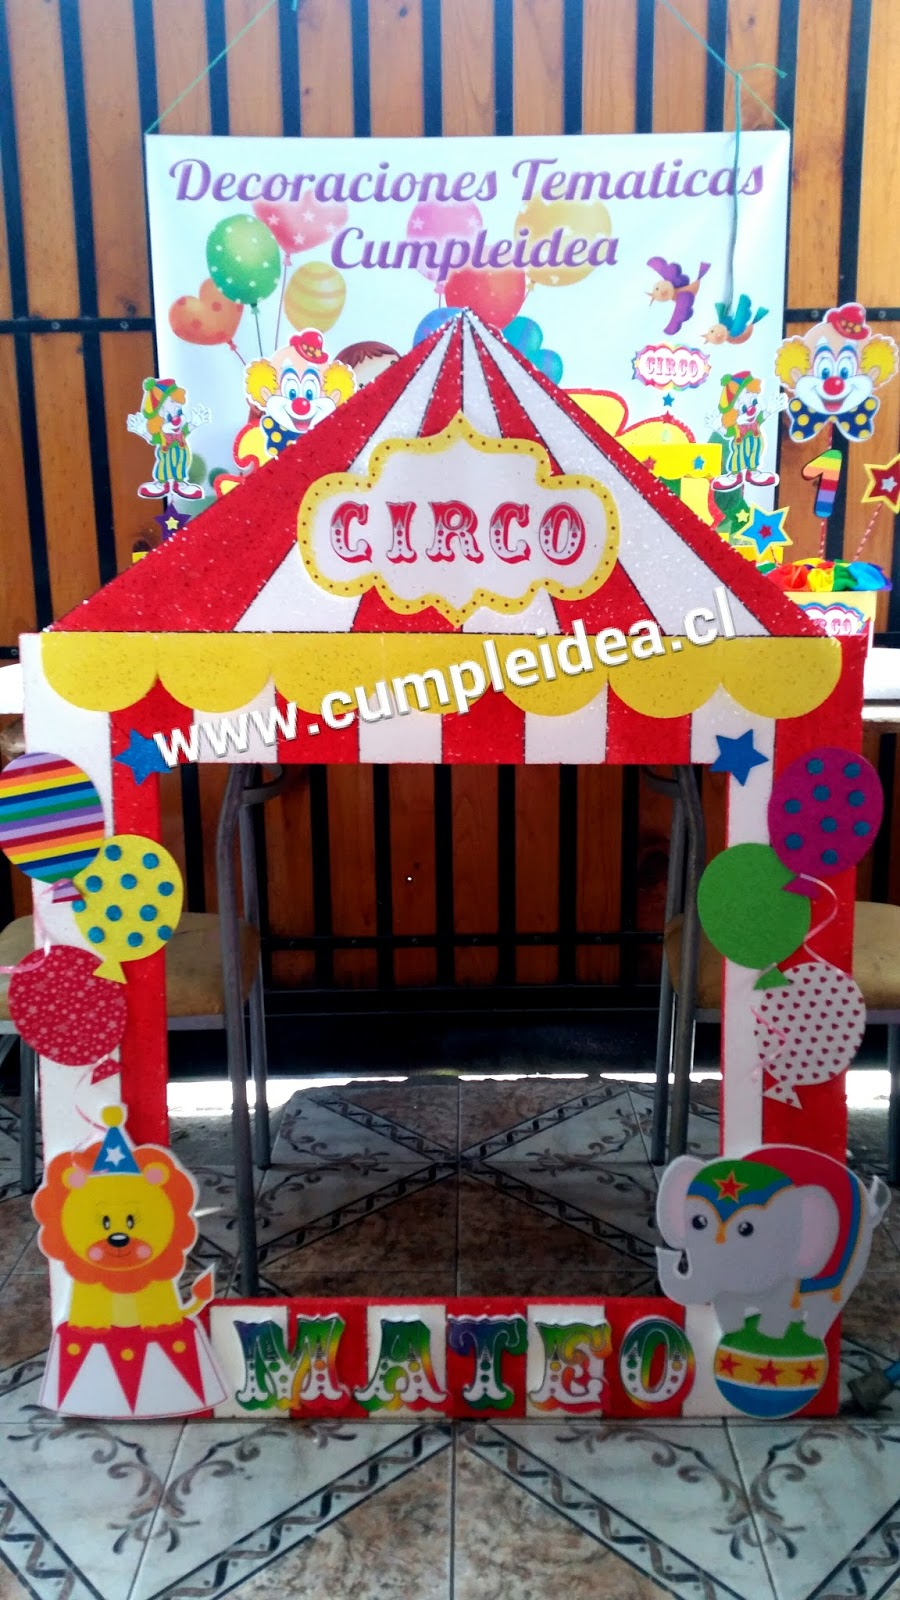 Decoraciones infantiles junio 2015 - Decoraciones de fotos ...